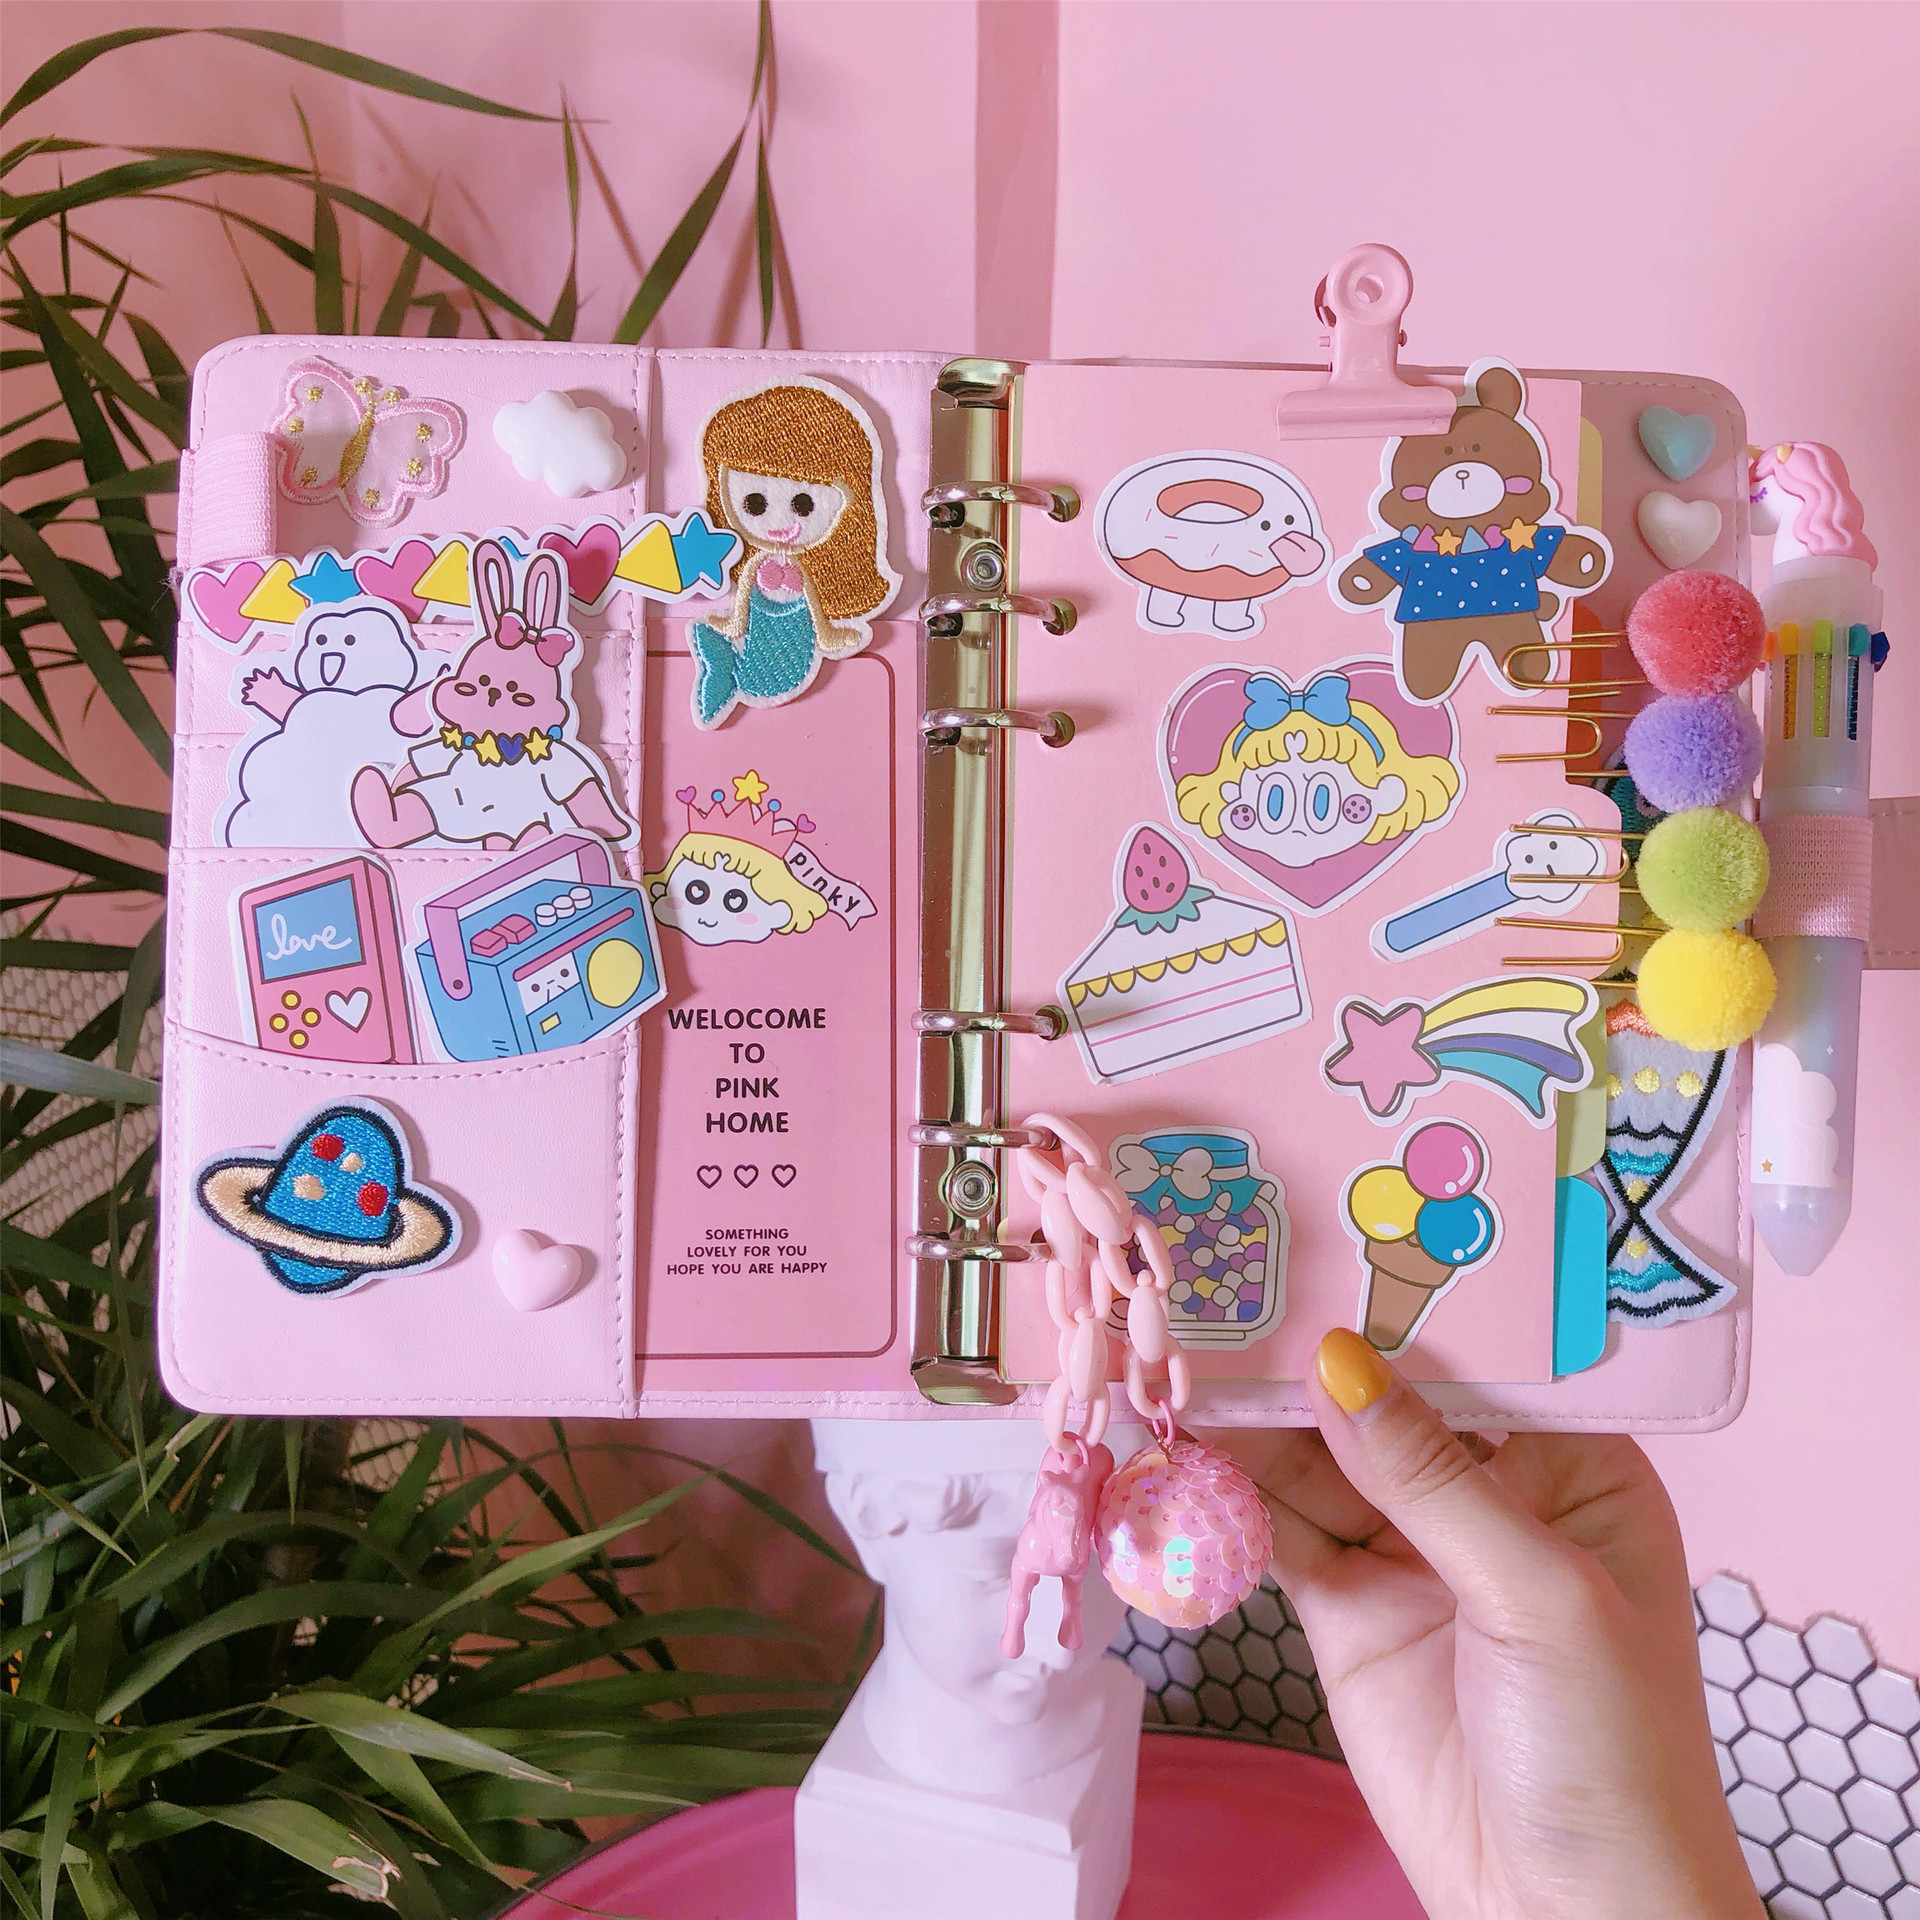 2019 INS Sweet Unicorn Planner Book Suit A6 Spiral Notebook Hand-book Students Supply Office Stationery Learning Gift for Girl 2019 INS Sweet Unicorn Planner Book Suit A6 Spiral Notebook Hand-book Students Supply Office Stationery Learning Gift for Girl